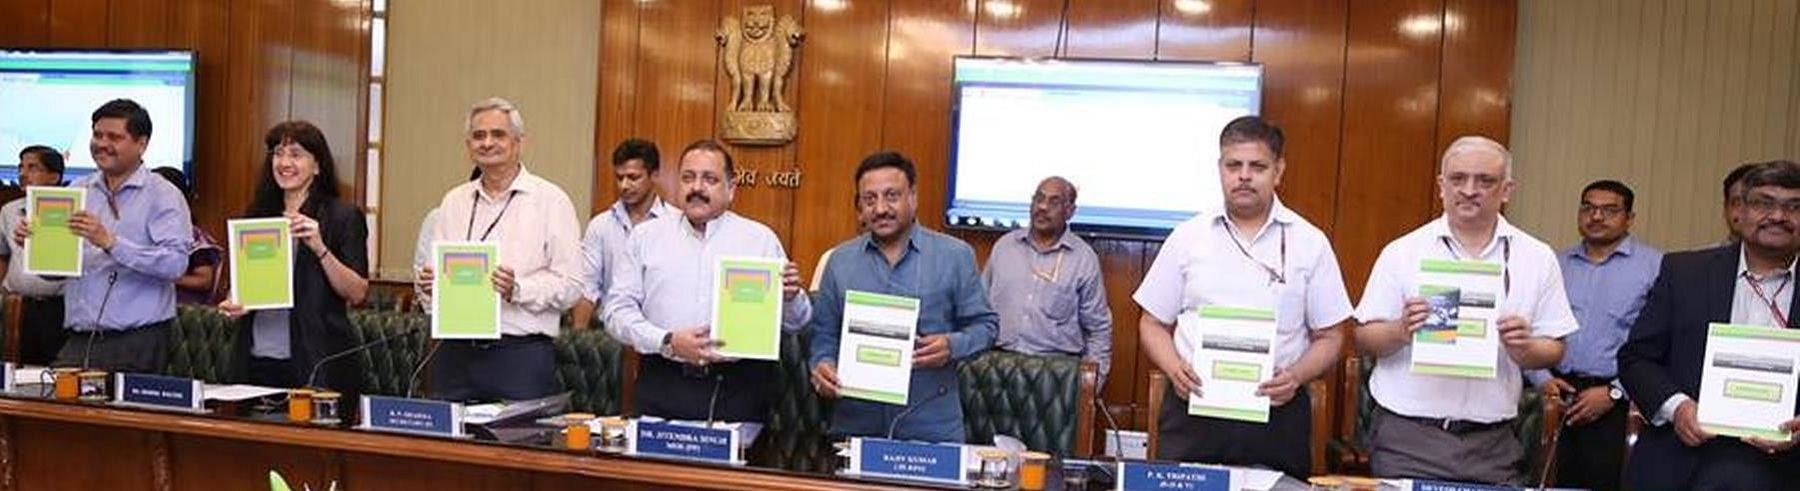 Digital Launch of Comprehensive Online Modified Modules for Induction Training (COMMIT) by Hon'ble MoS(PP) on 29/06/2017